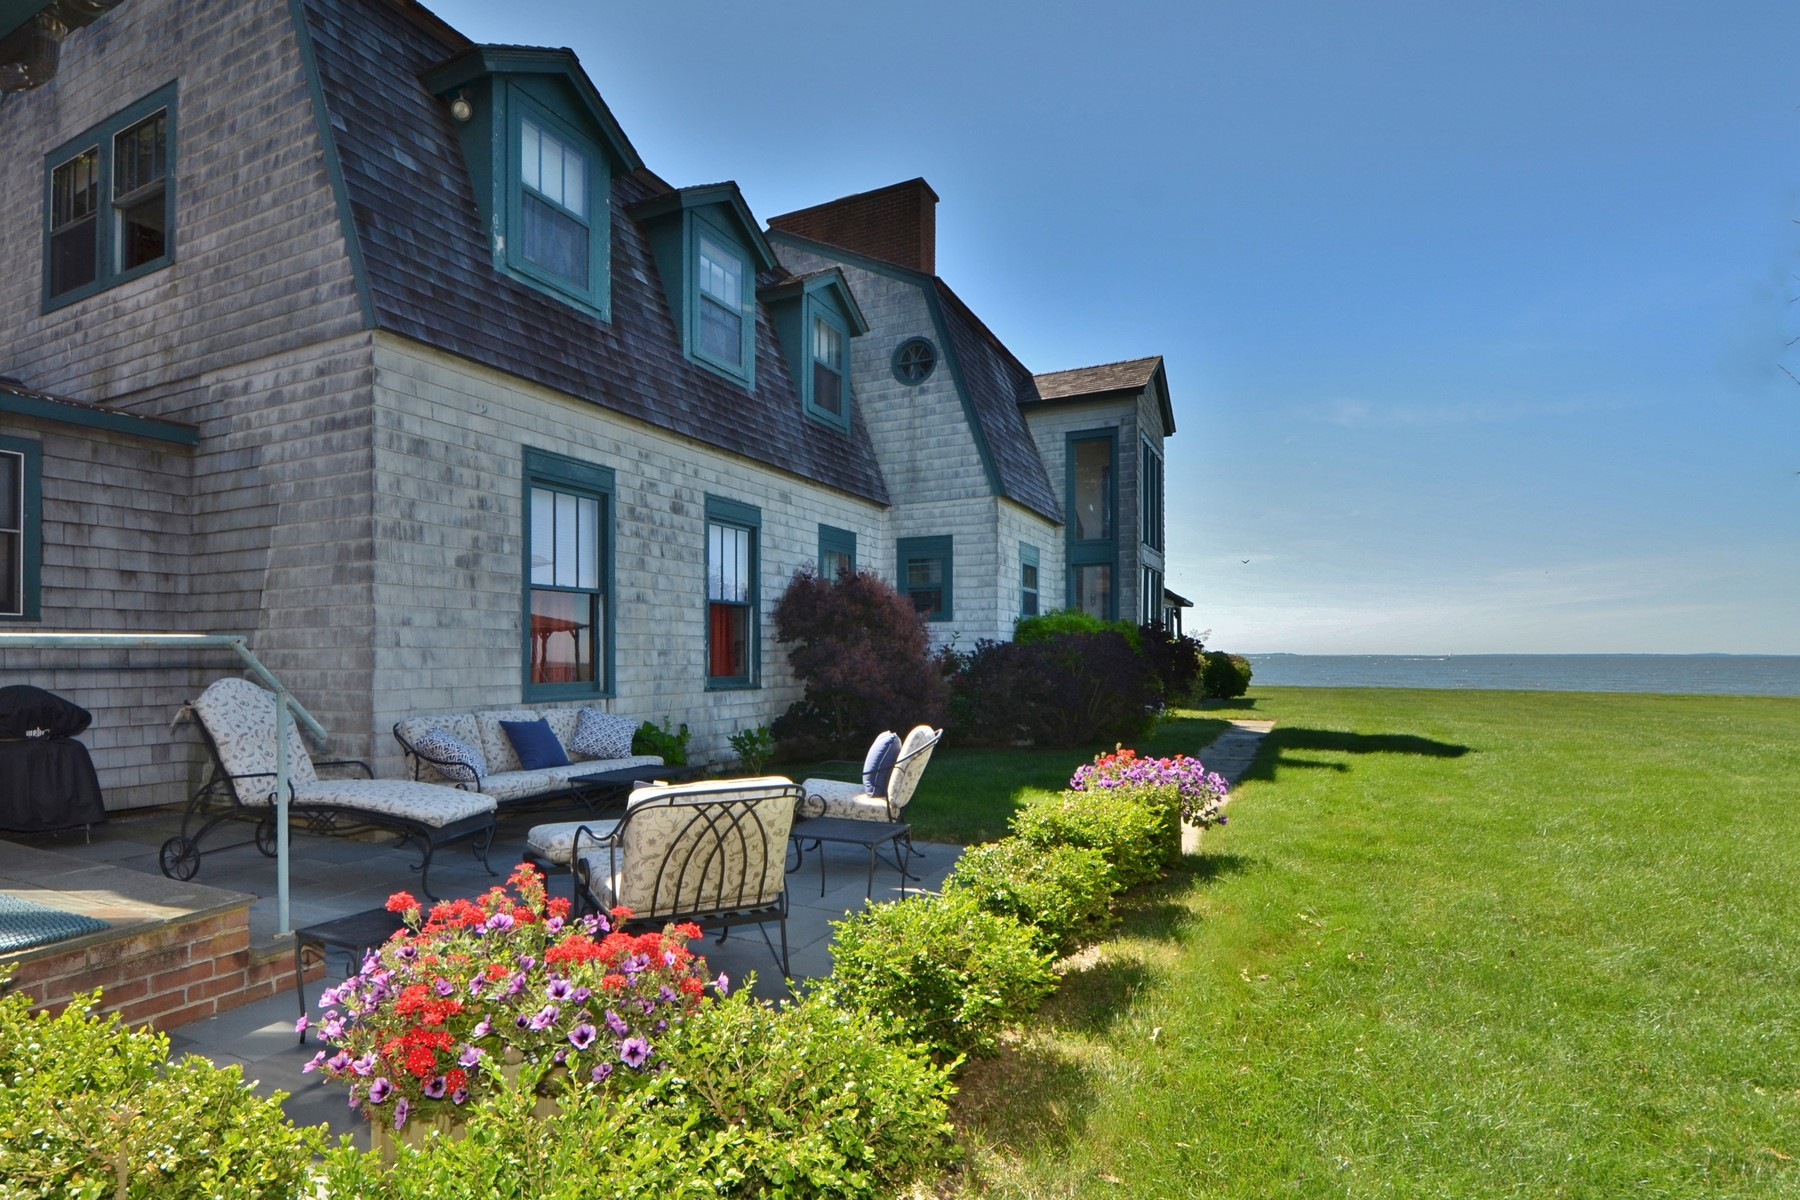 Single Family Homes for Sale at Beautiful, Classic, Waterfront Fenwick Home 25 Pettipaug Avenue, Old Saybrook, Connecticut 06475 United States